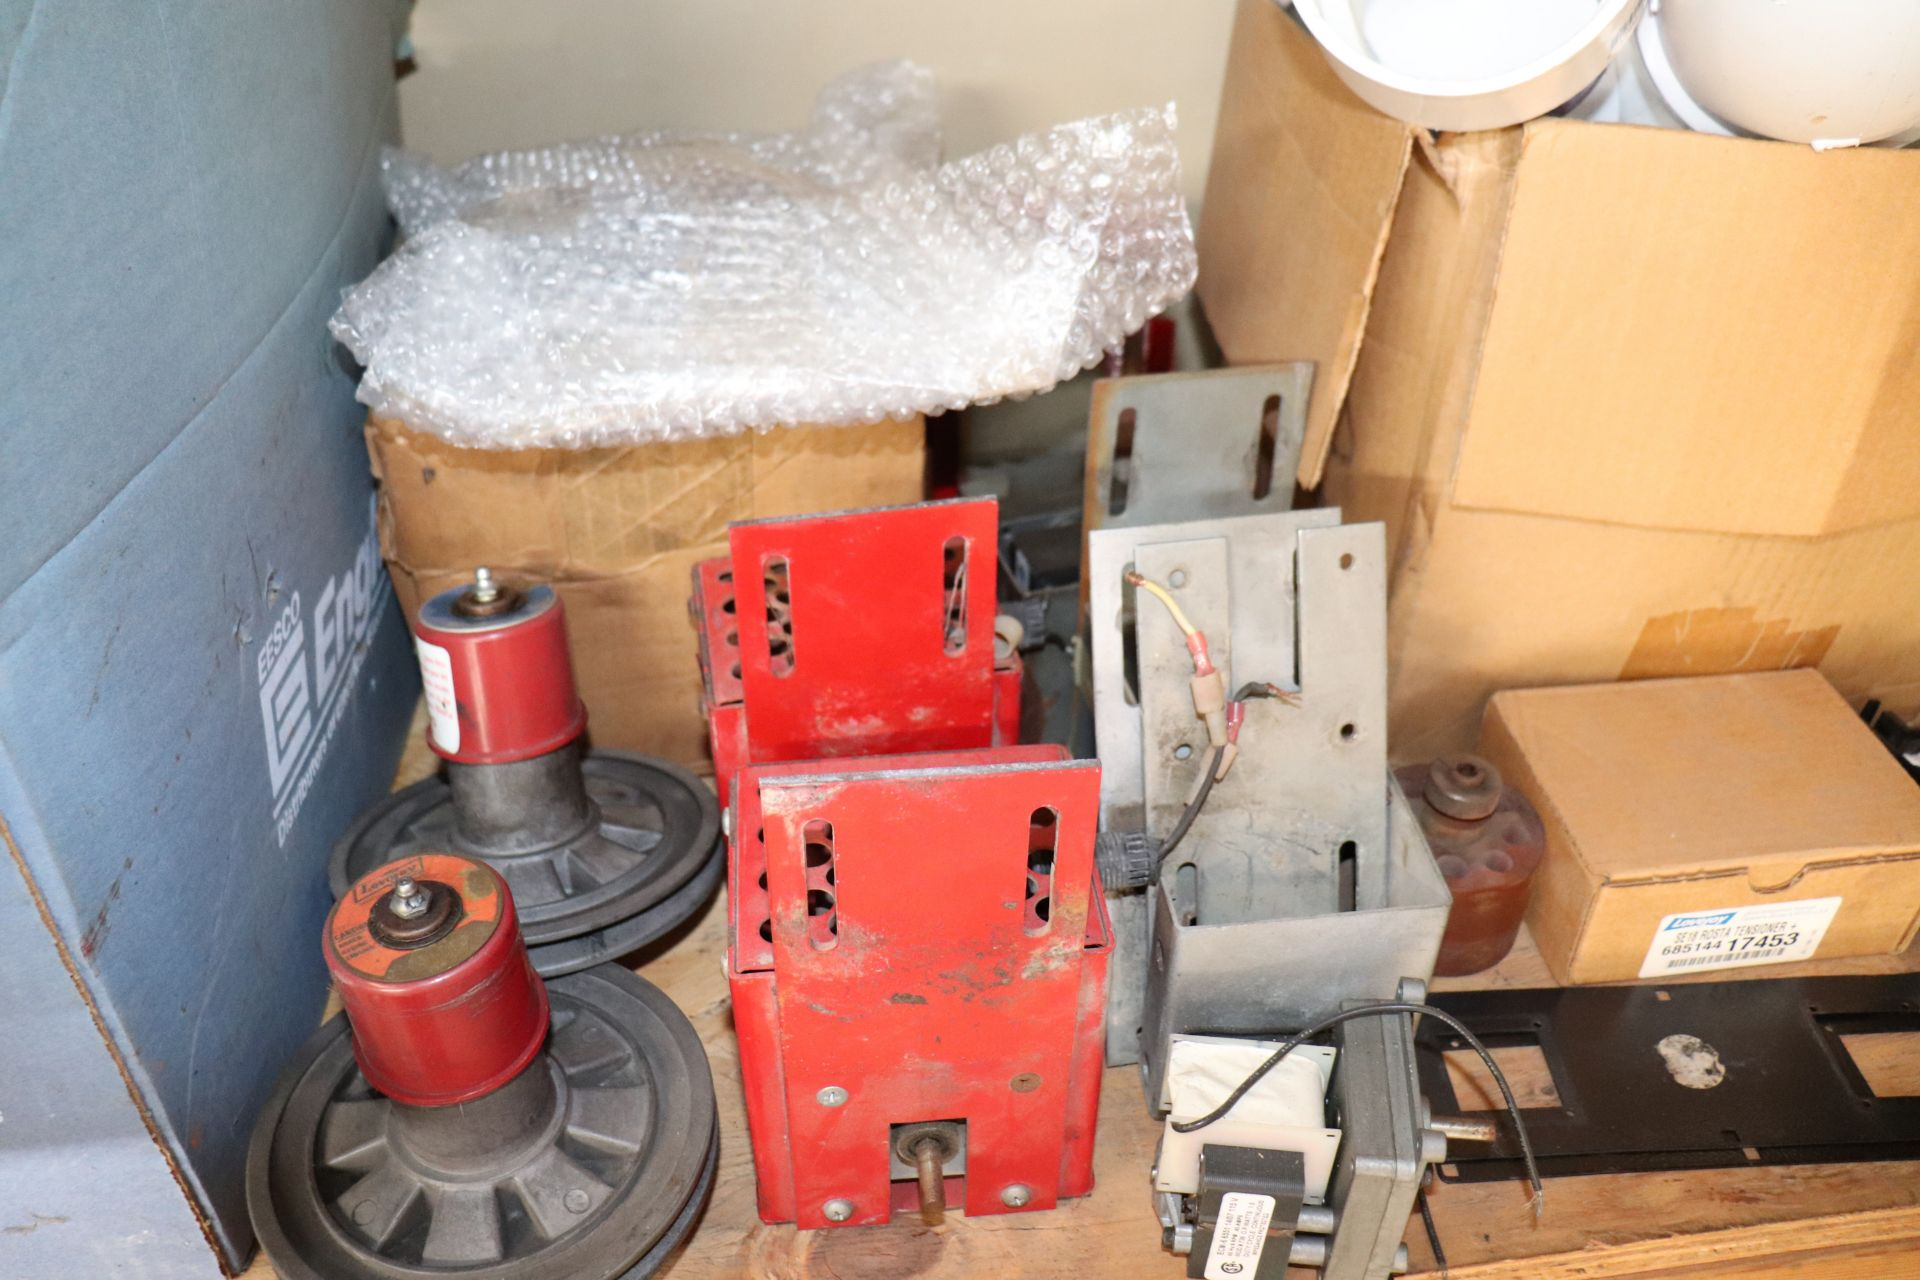 Miscellaneous ABC automatic batting cage parts including token mechs, vibration bearings, motor shaf - Image 2 of 5